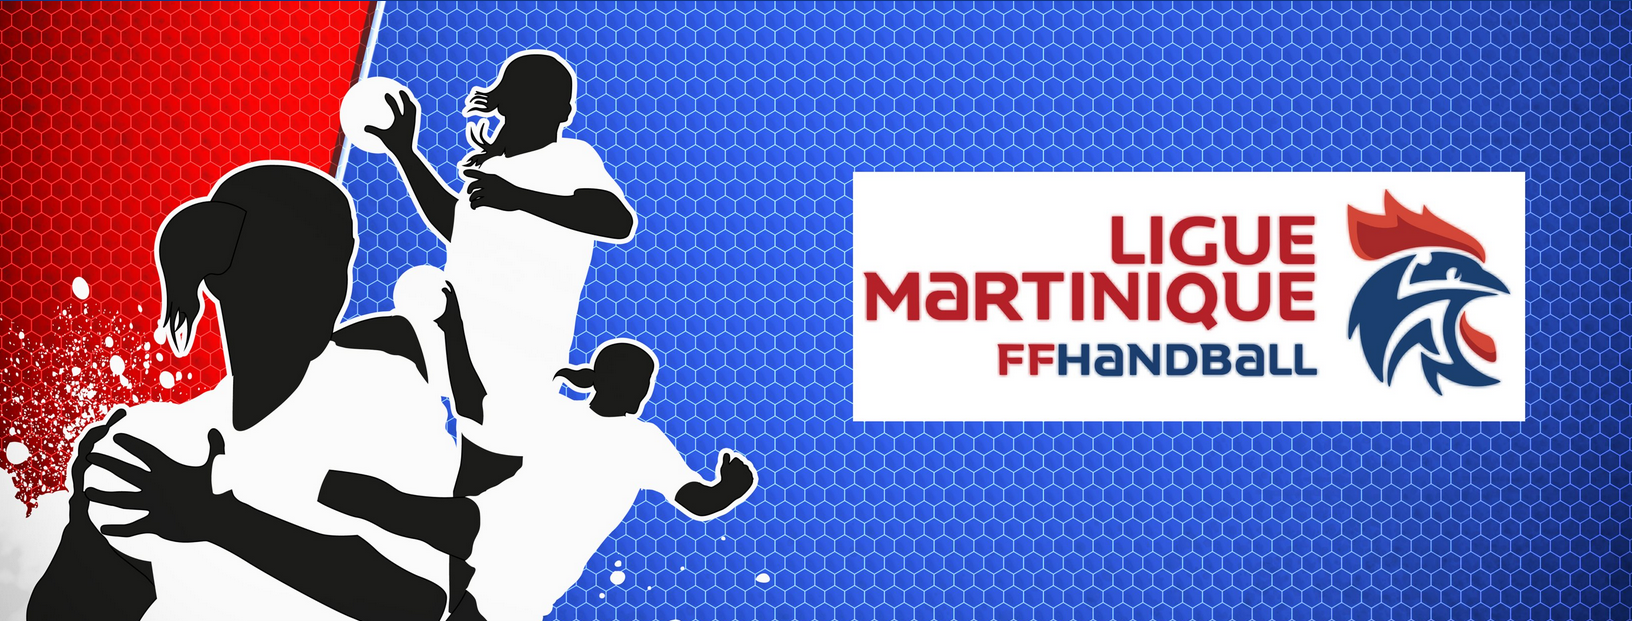 LIGUE DE HANDBALL DE LA MARTINIQUE